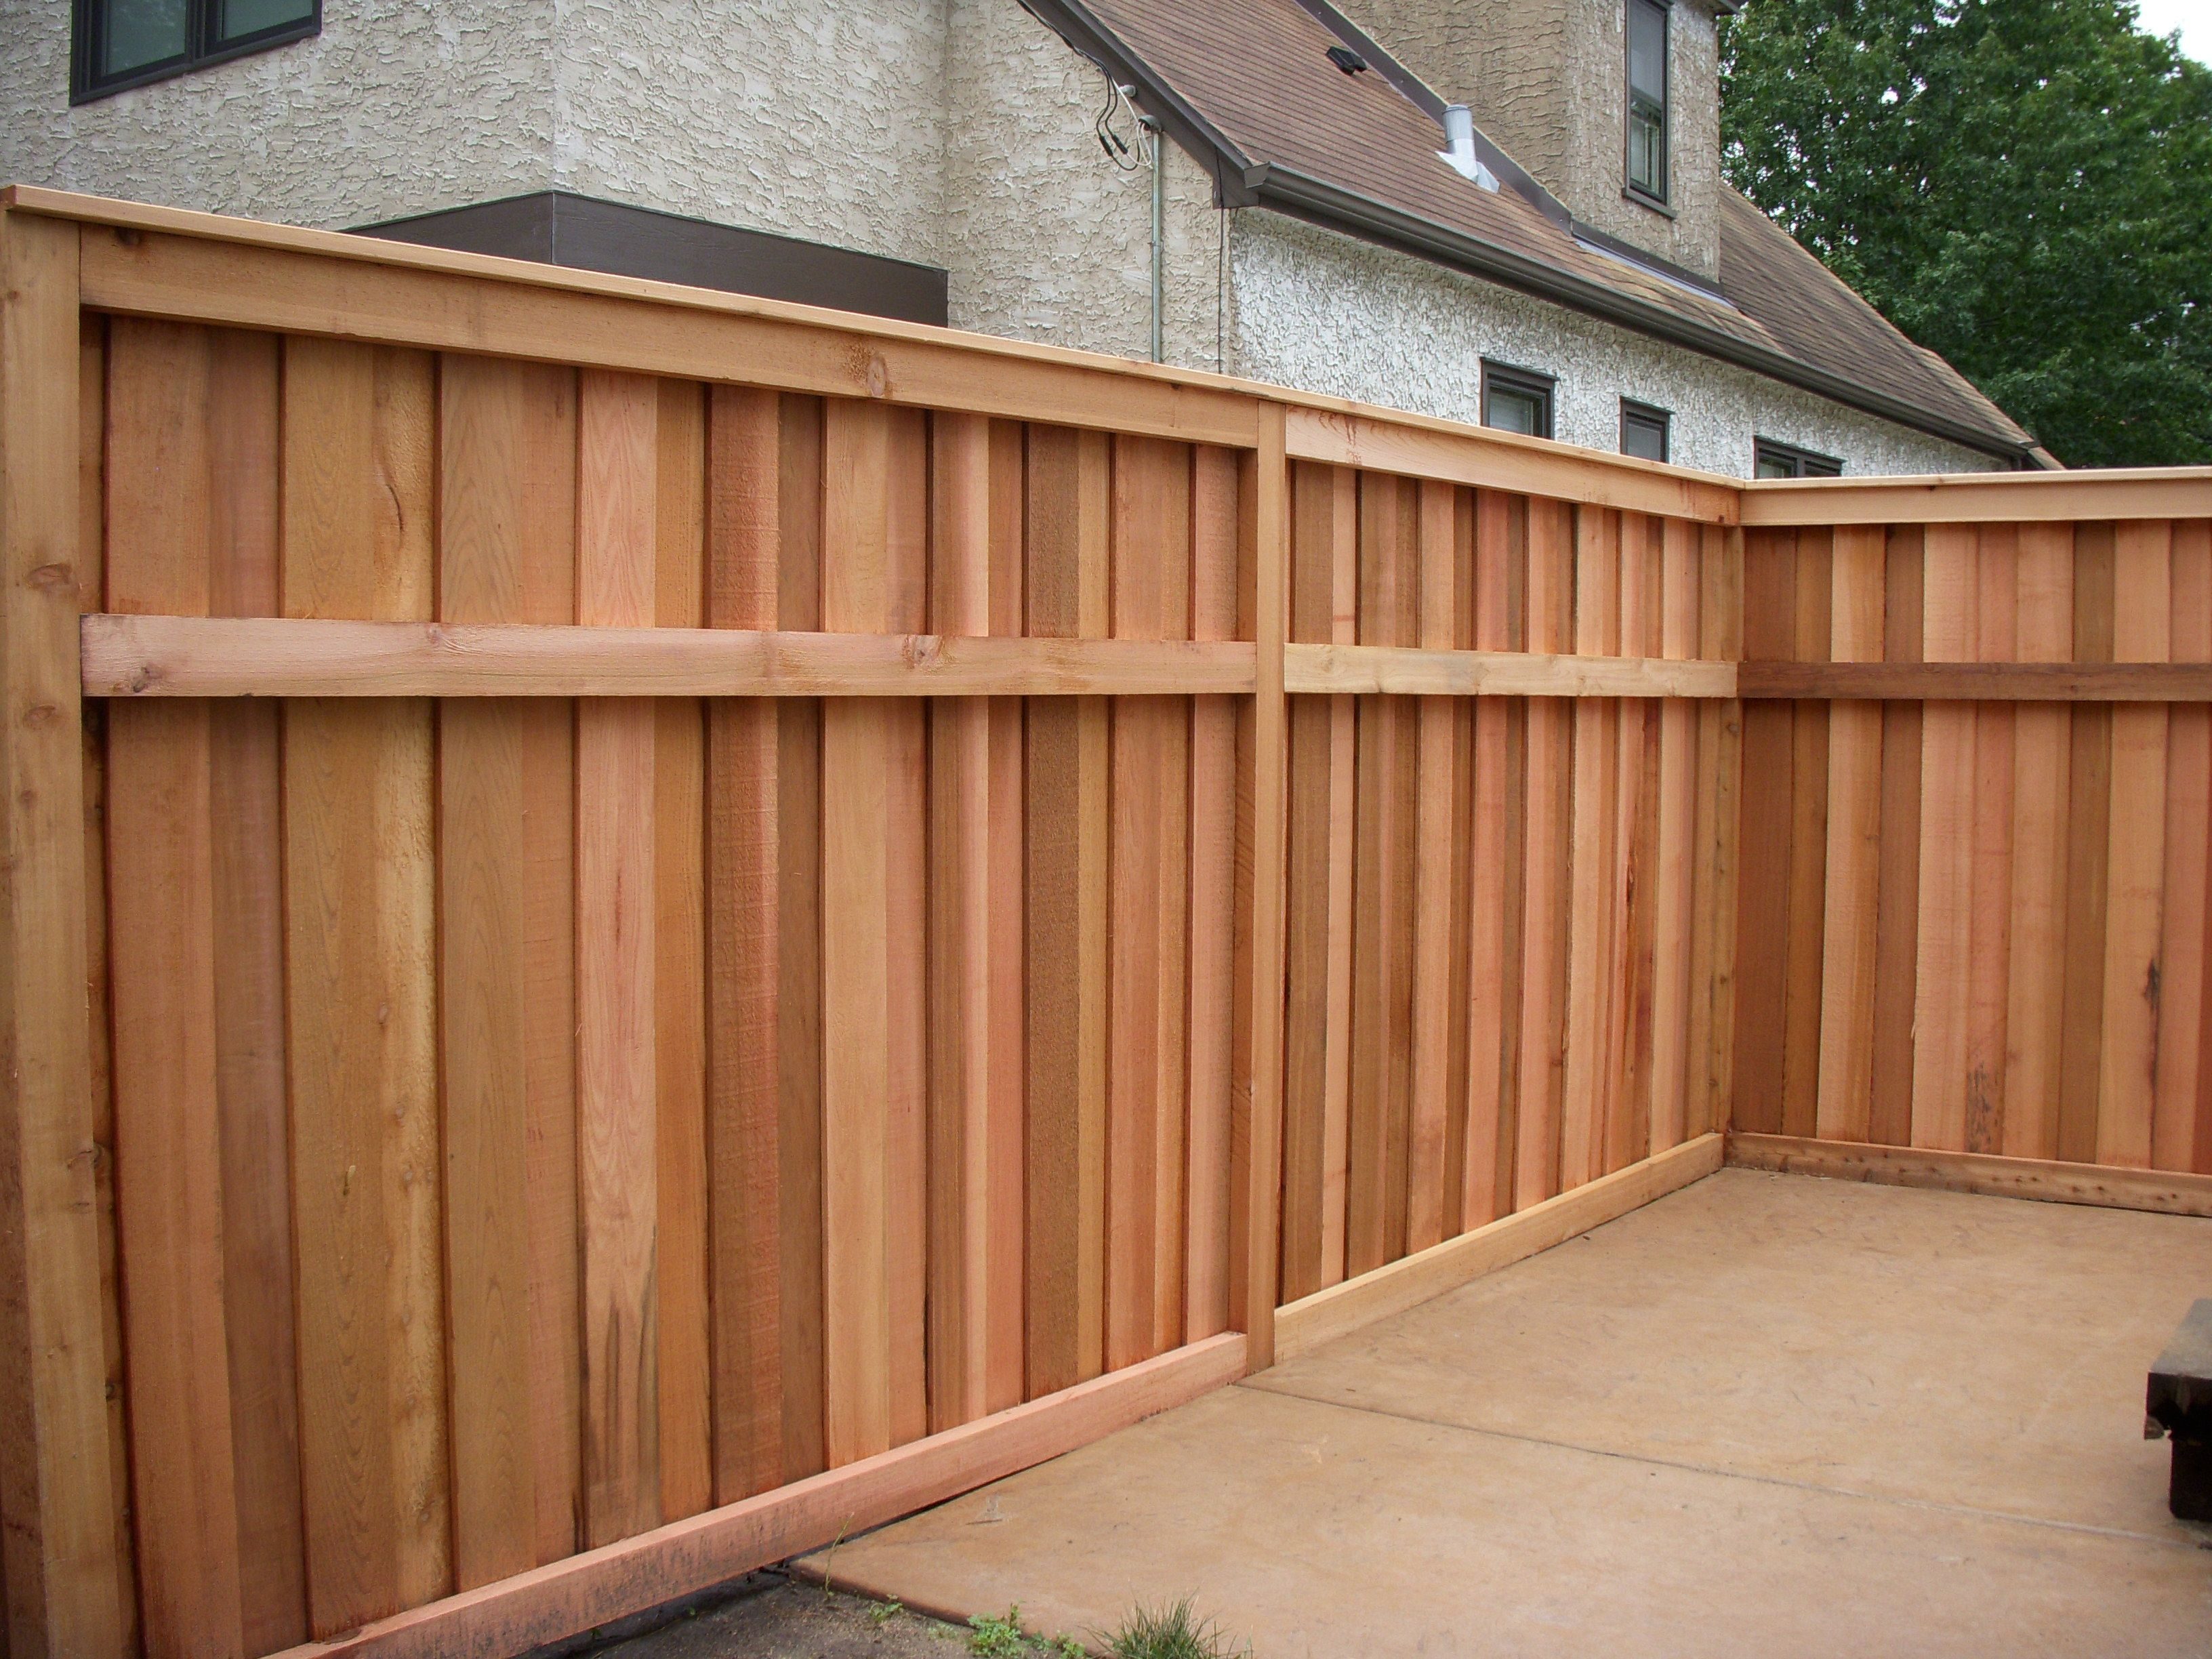 Tight Board Privacy Fence Google Search Picket Fence Panels Wood Fence Railing Design